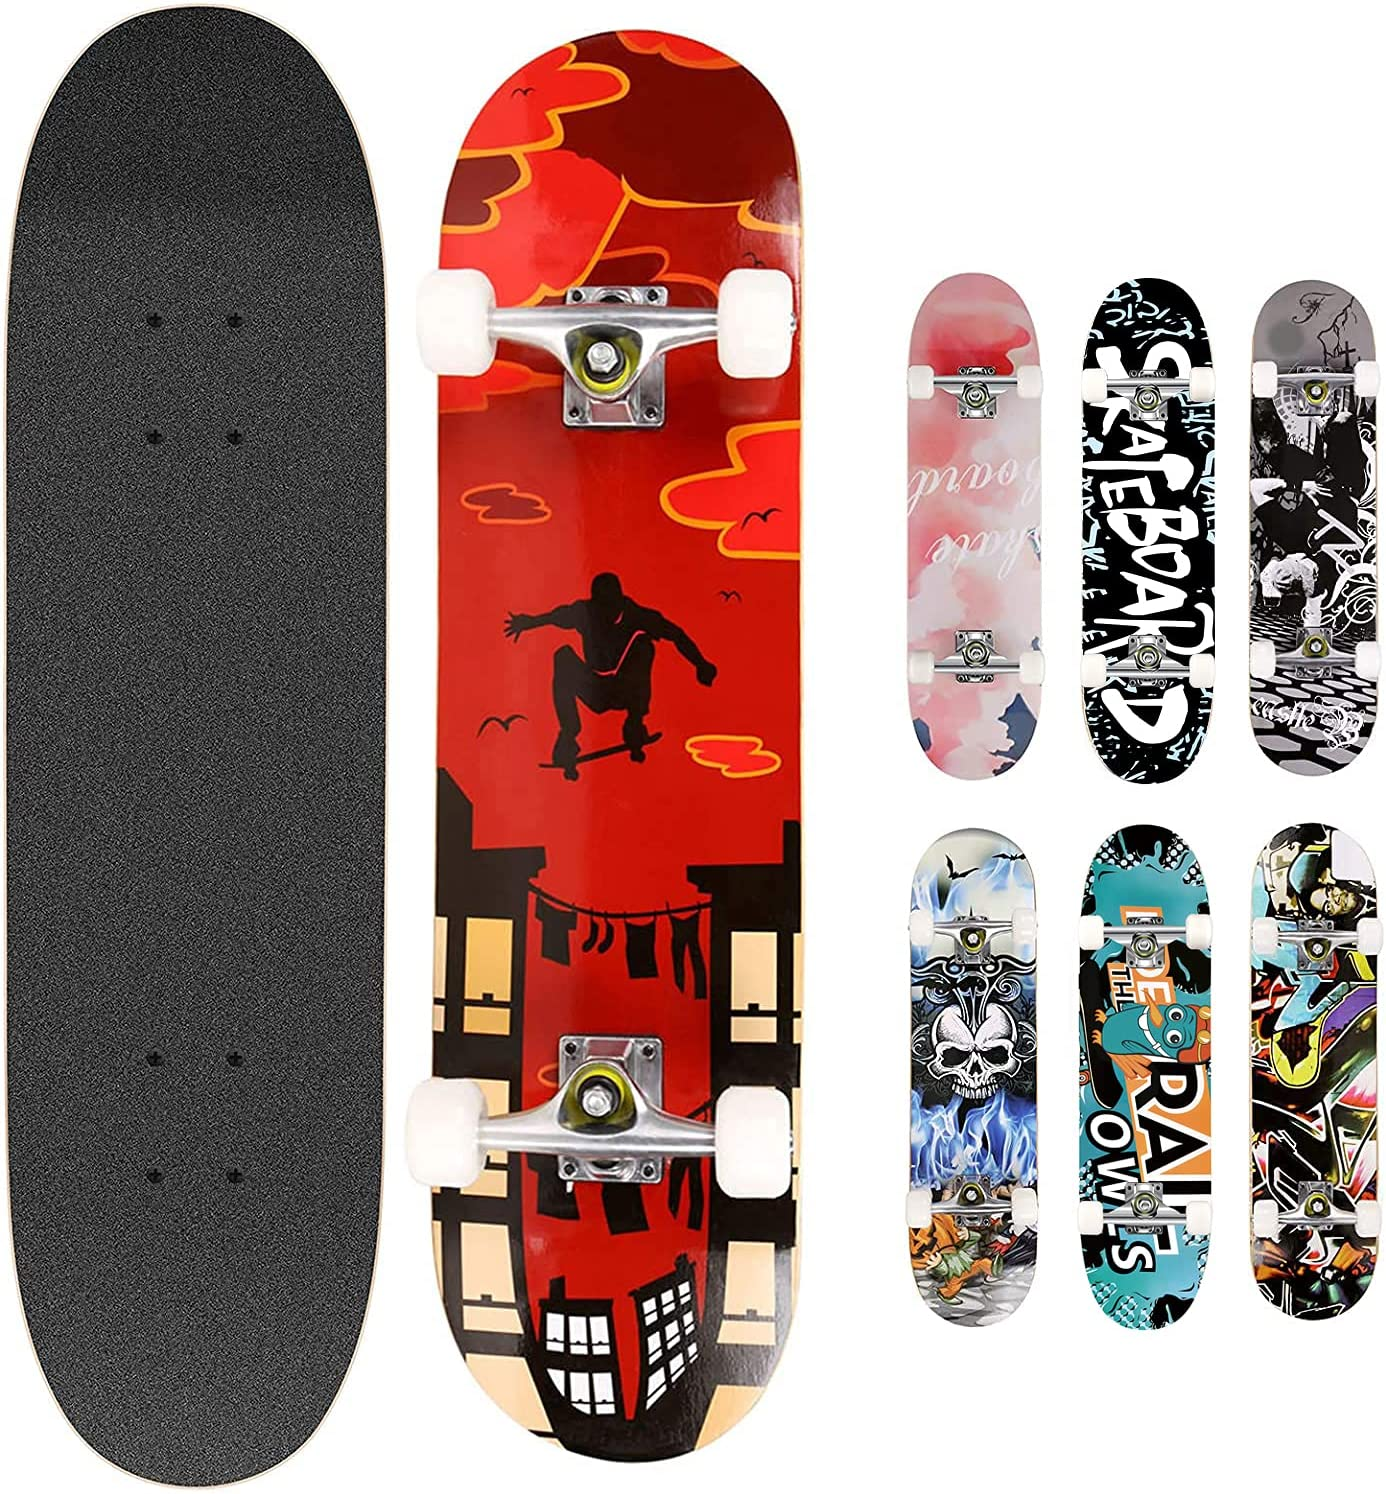 Smibie Skateboards Pro 31 inches Phoenix Mall Complete for Large-scale sale Teens